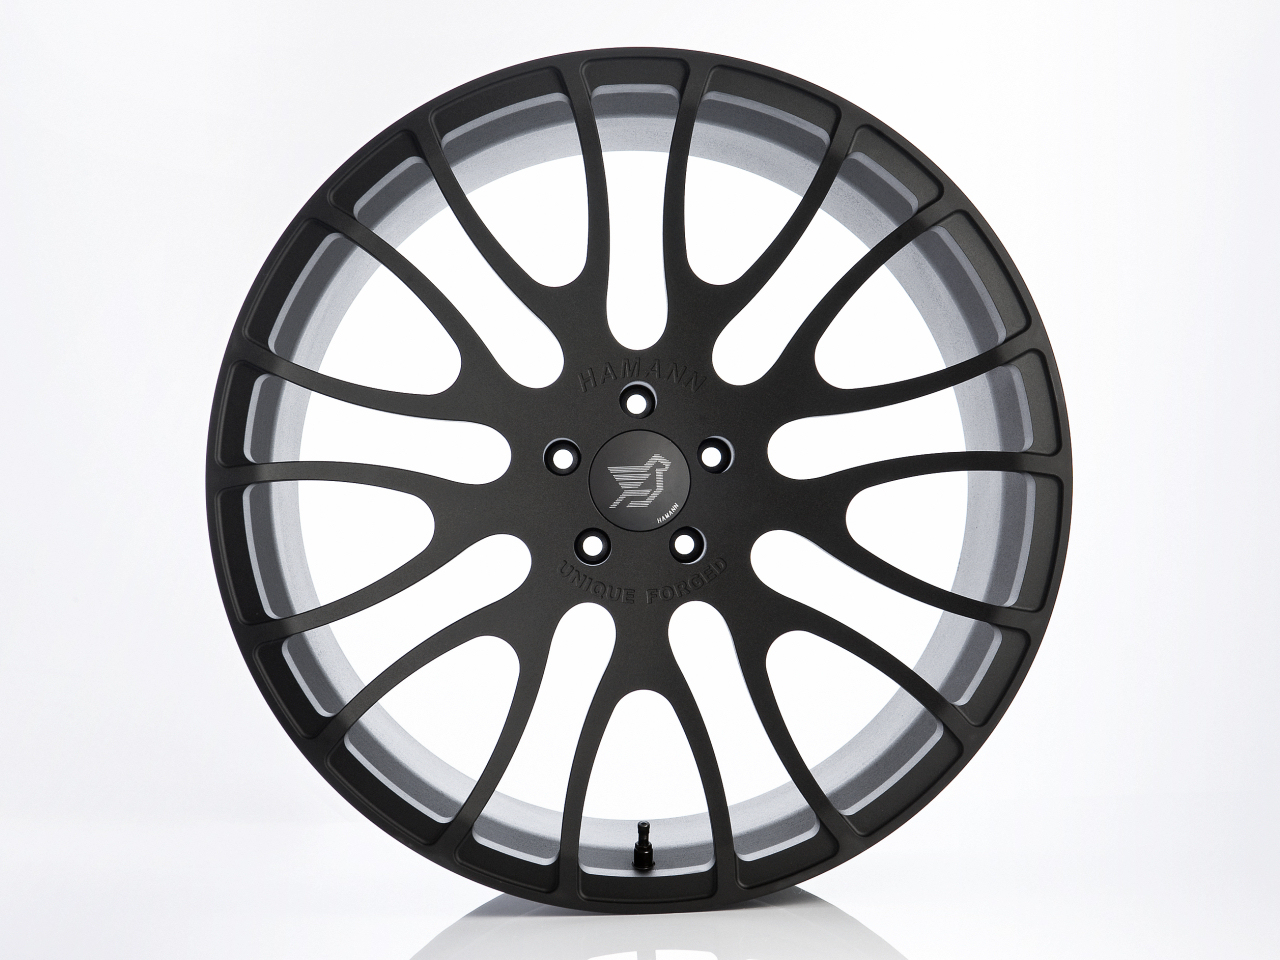 'Unqiue Forged Anodized' Wheel by Hamann Motorsport